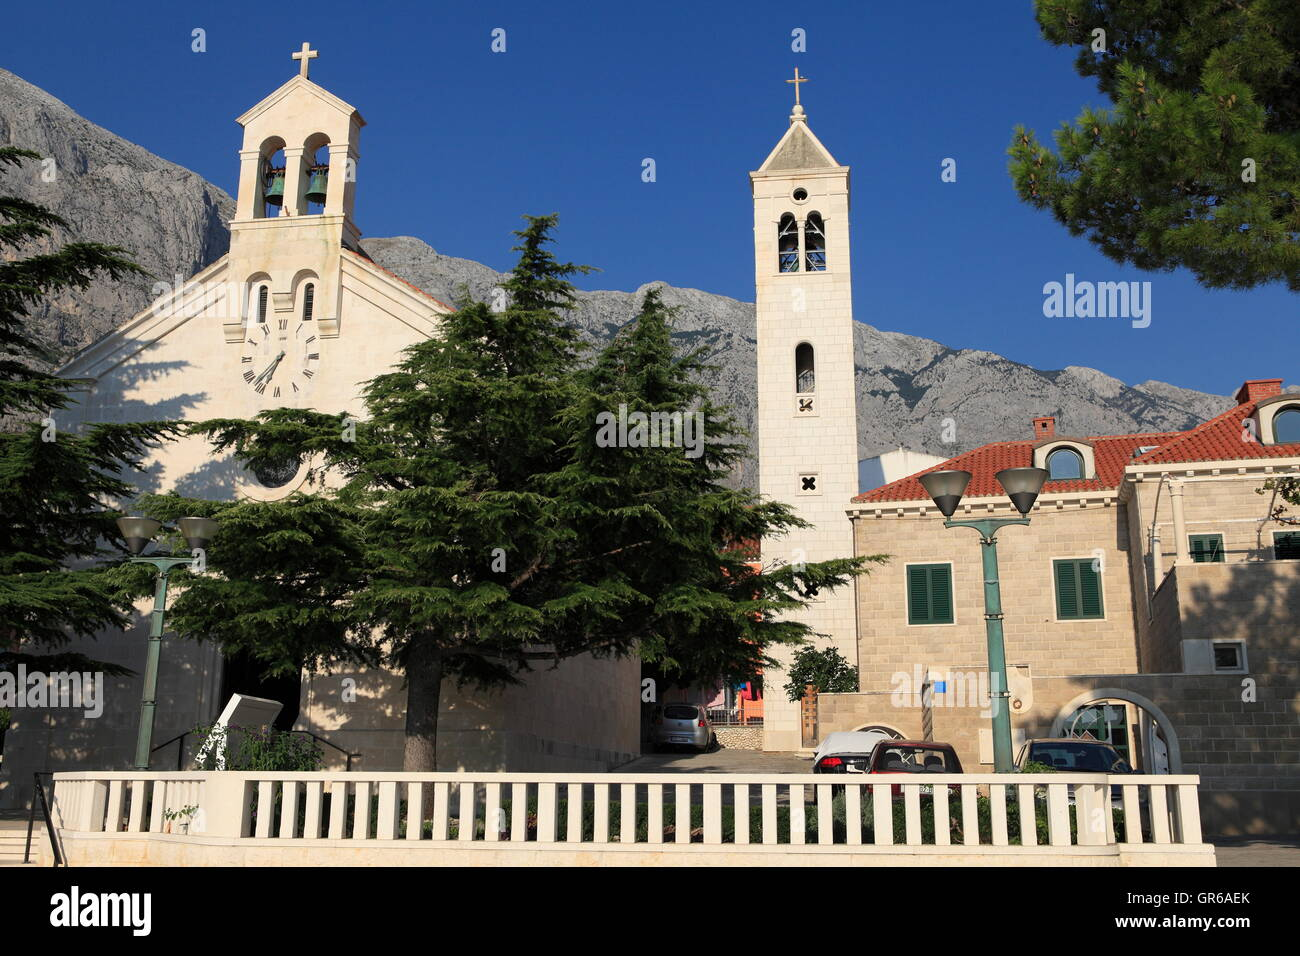 Baska Voda, Dalmatia, Croatia, Europe - Stock Image